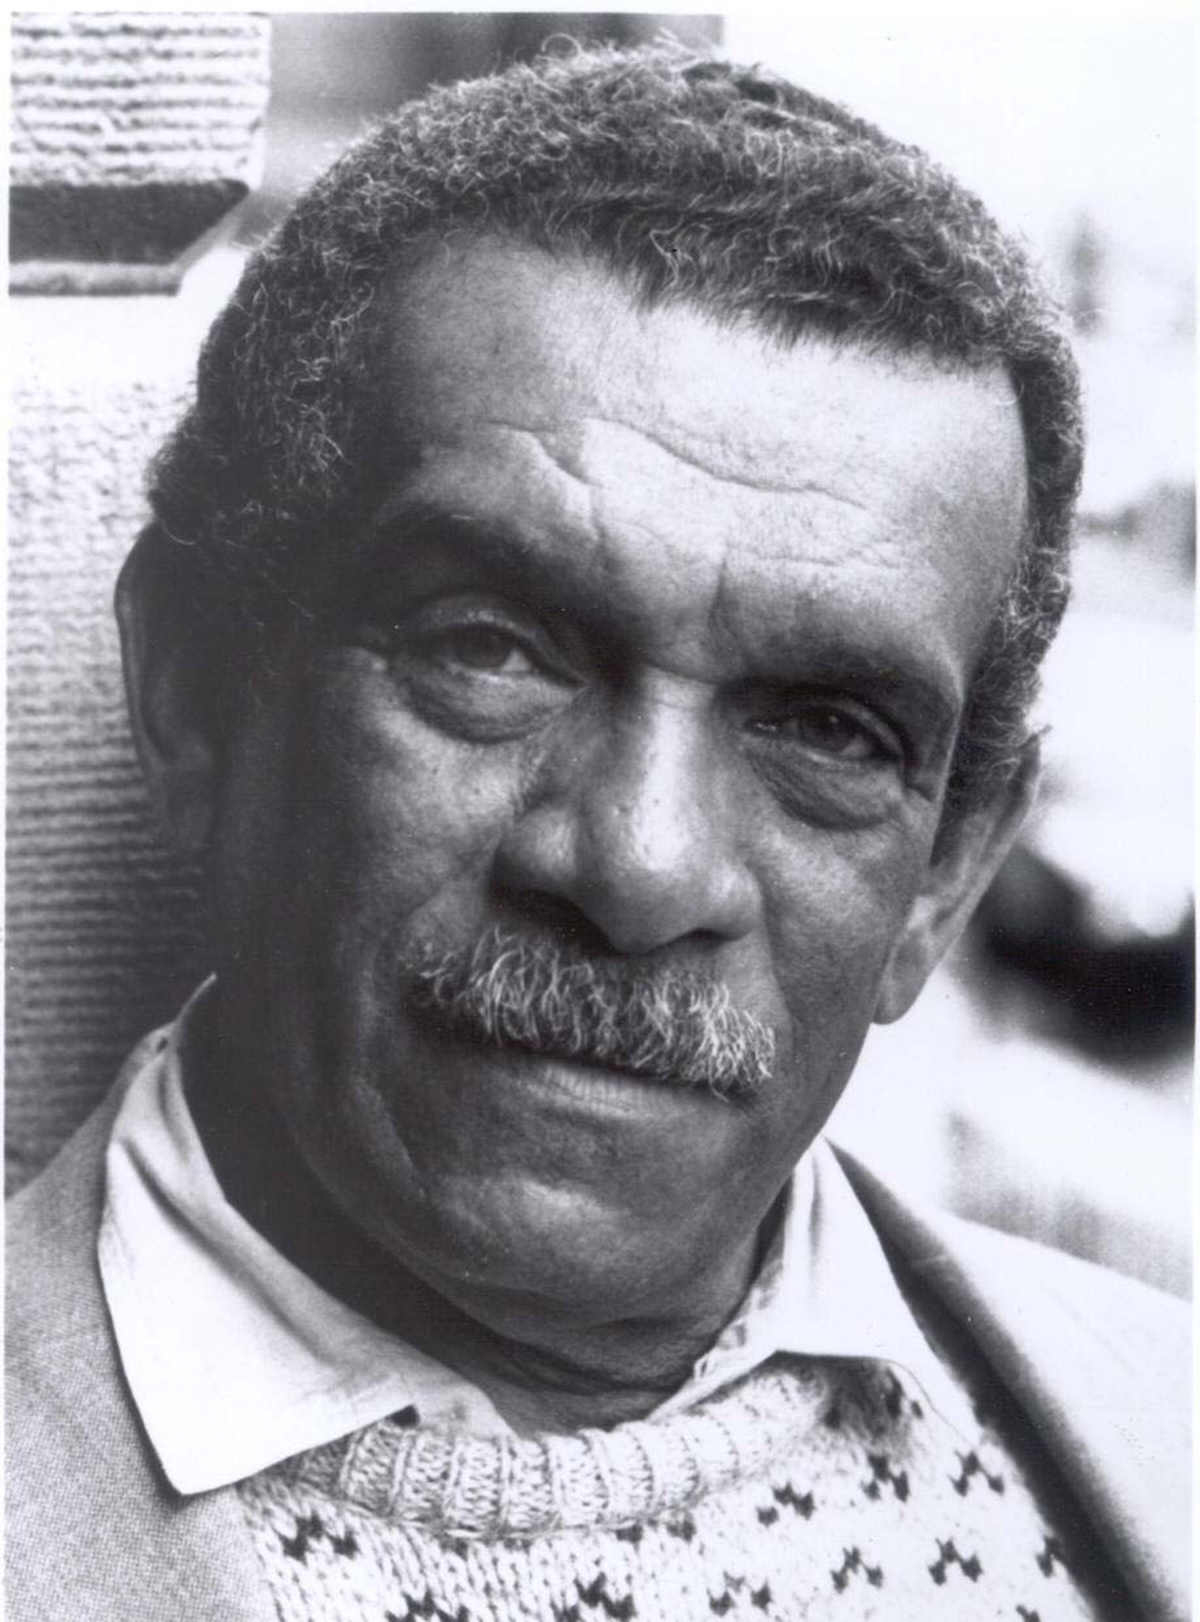 derek walcott old new england Early career walcott was born in stanmore, london, but grew up in compton, berkshirehe attended compton church of england primary school and the downs school, playing football for the local village team and later for newbury.